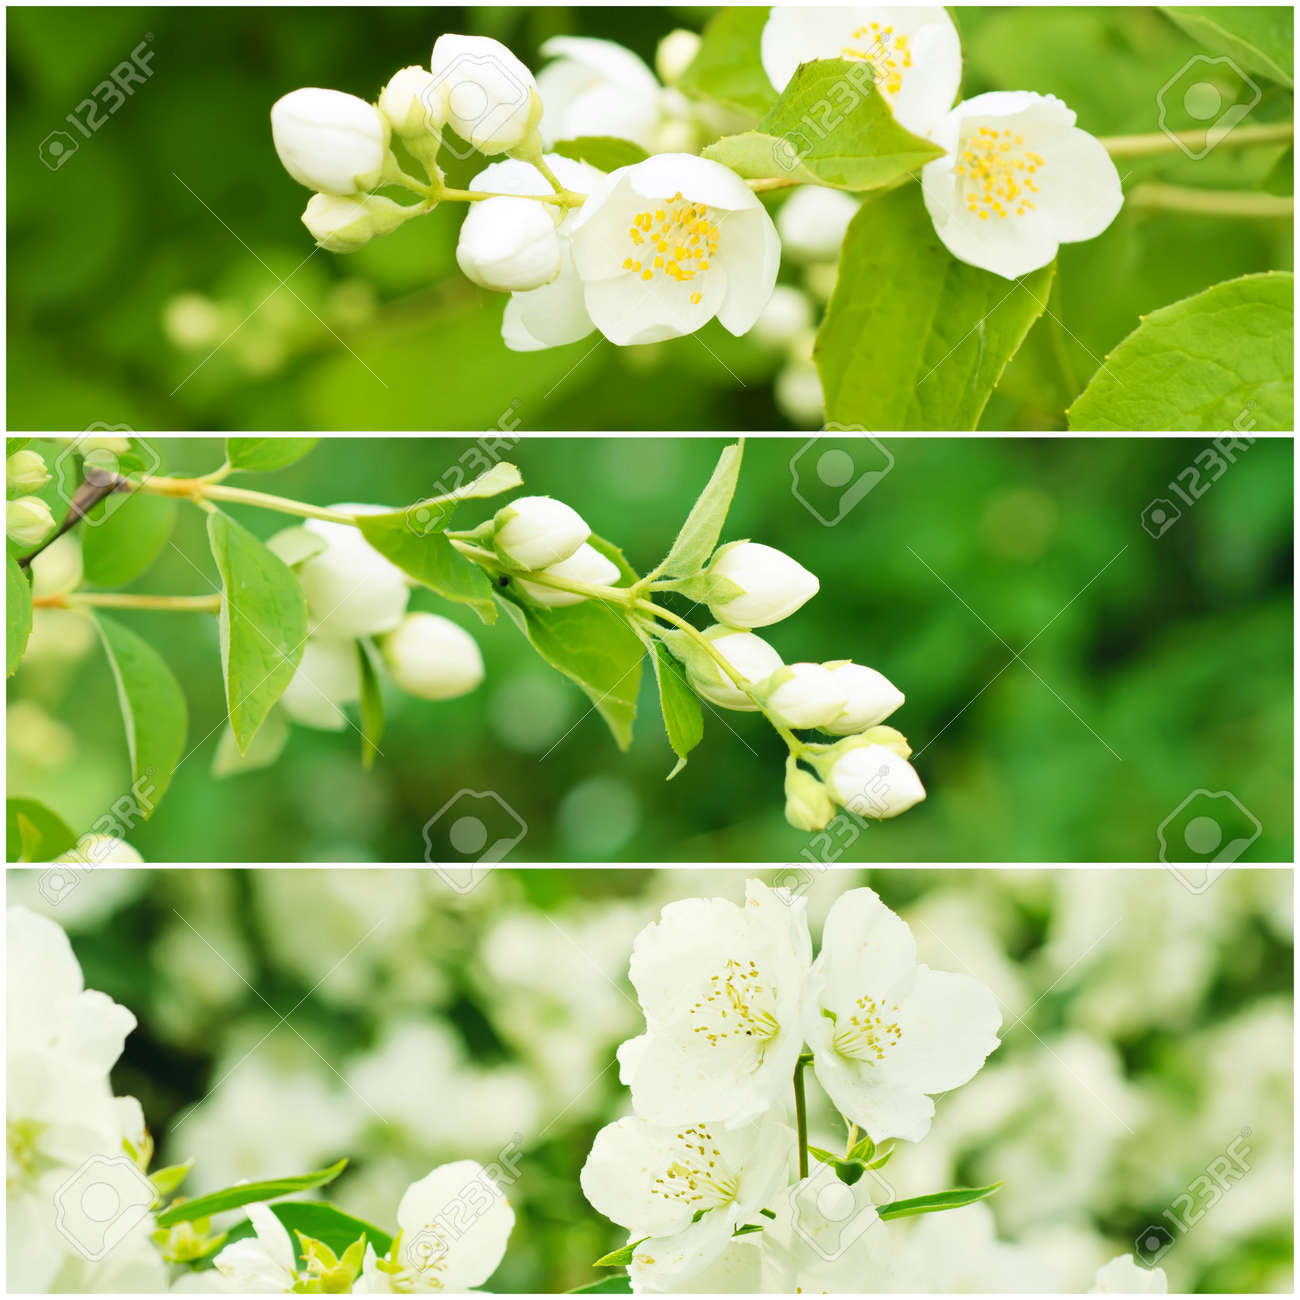 Collection Of Jasmine Flowers At Summer Time With Green Leaves